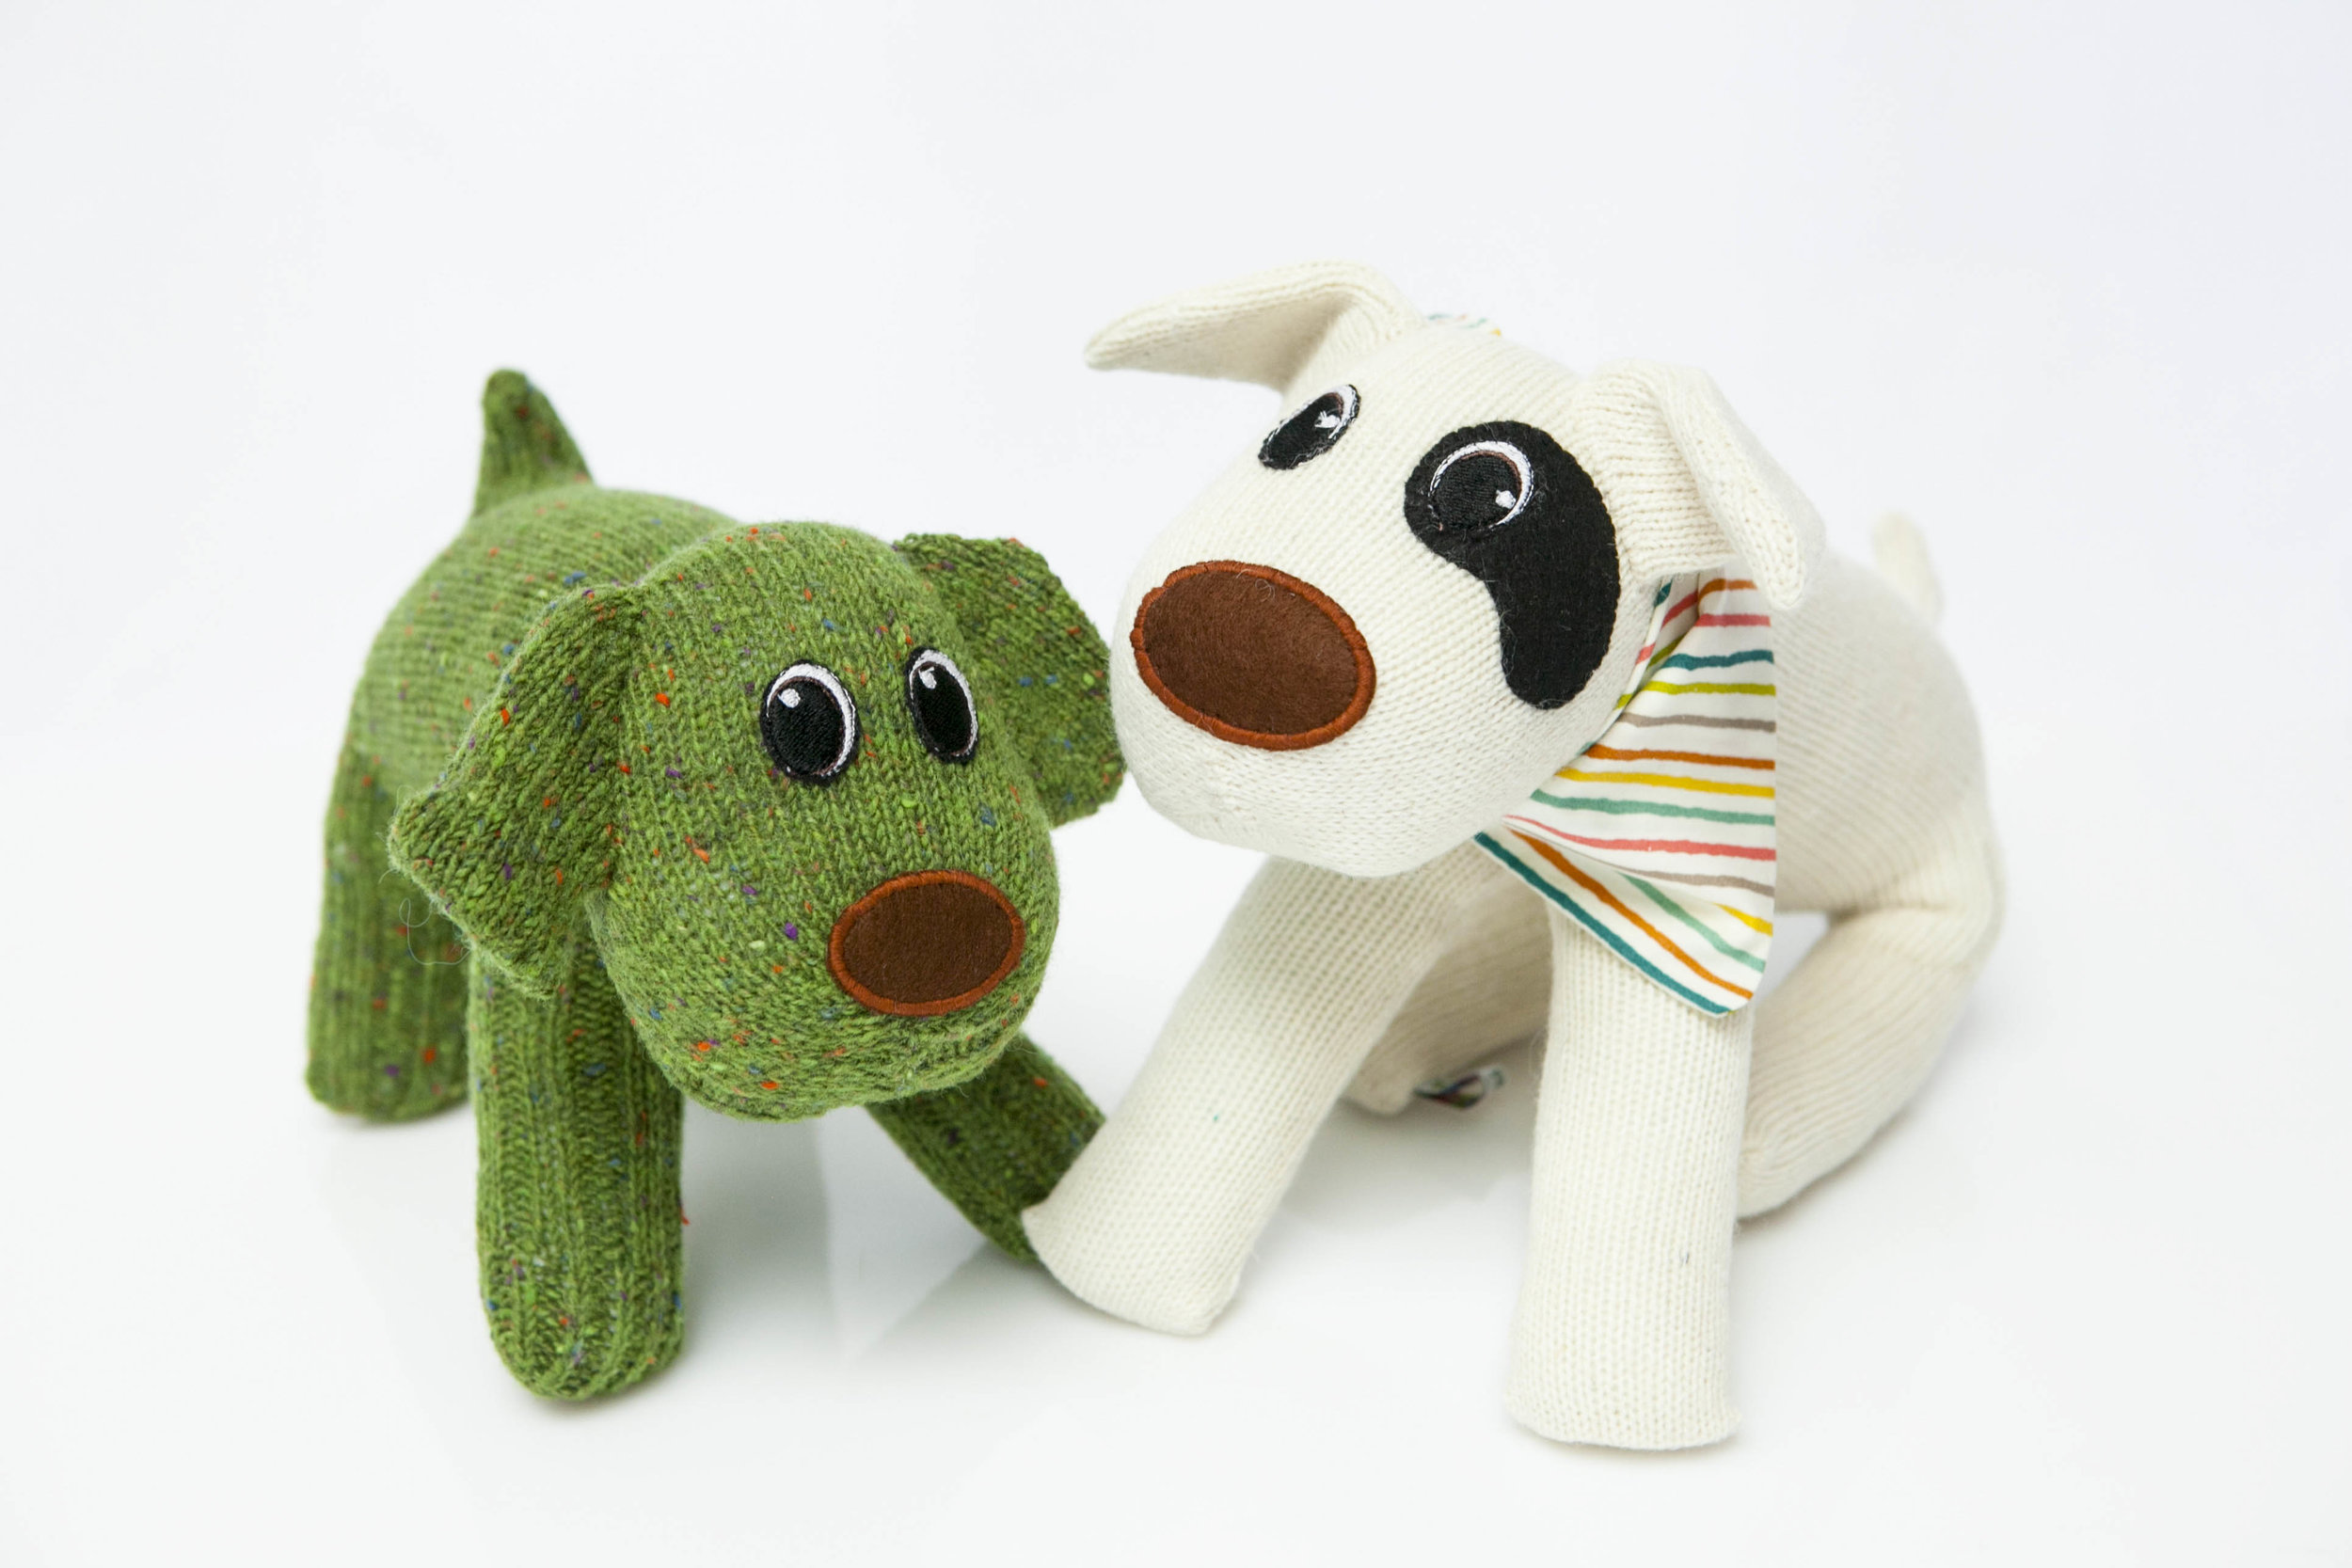 RED RUFUS   Spreading joy one SockDog at a time!A member of the Design and Craft Council of Ireland Red Rufus'soft friends bring comfort and joy with style. Hardwearing, ethically made and totally loveable they are suitable for dog mad people and gentle doggos.